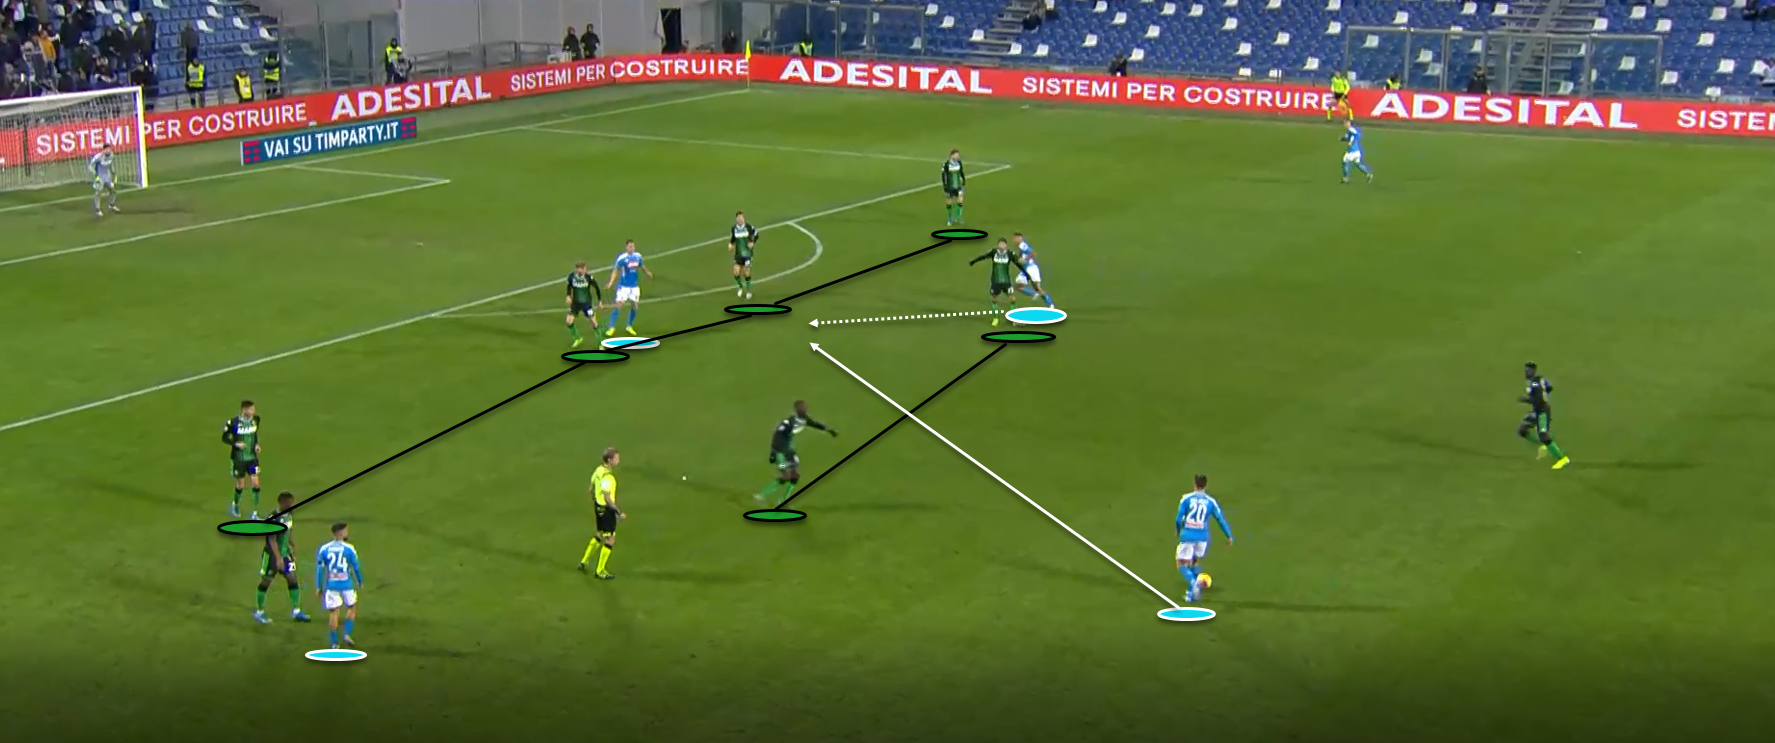 Serie A 2019/20: Sassuolo Vs Napoli - Tactical Analysis tactics